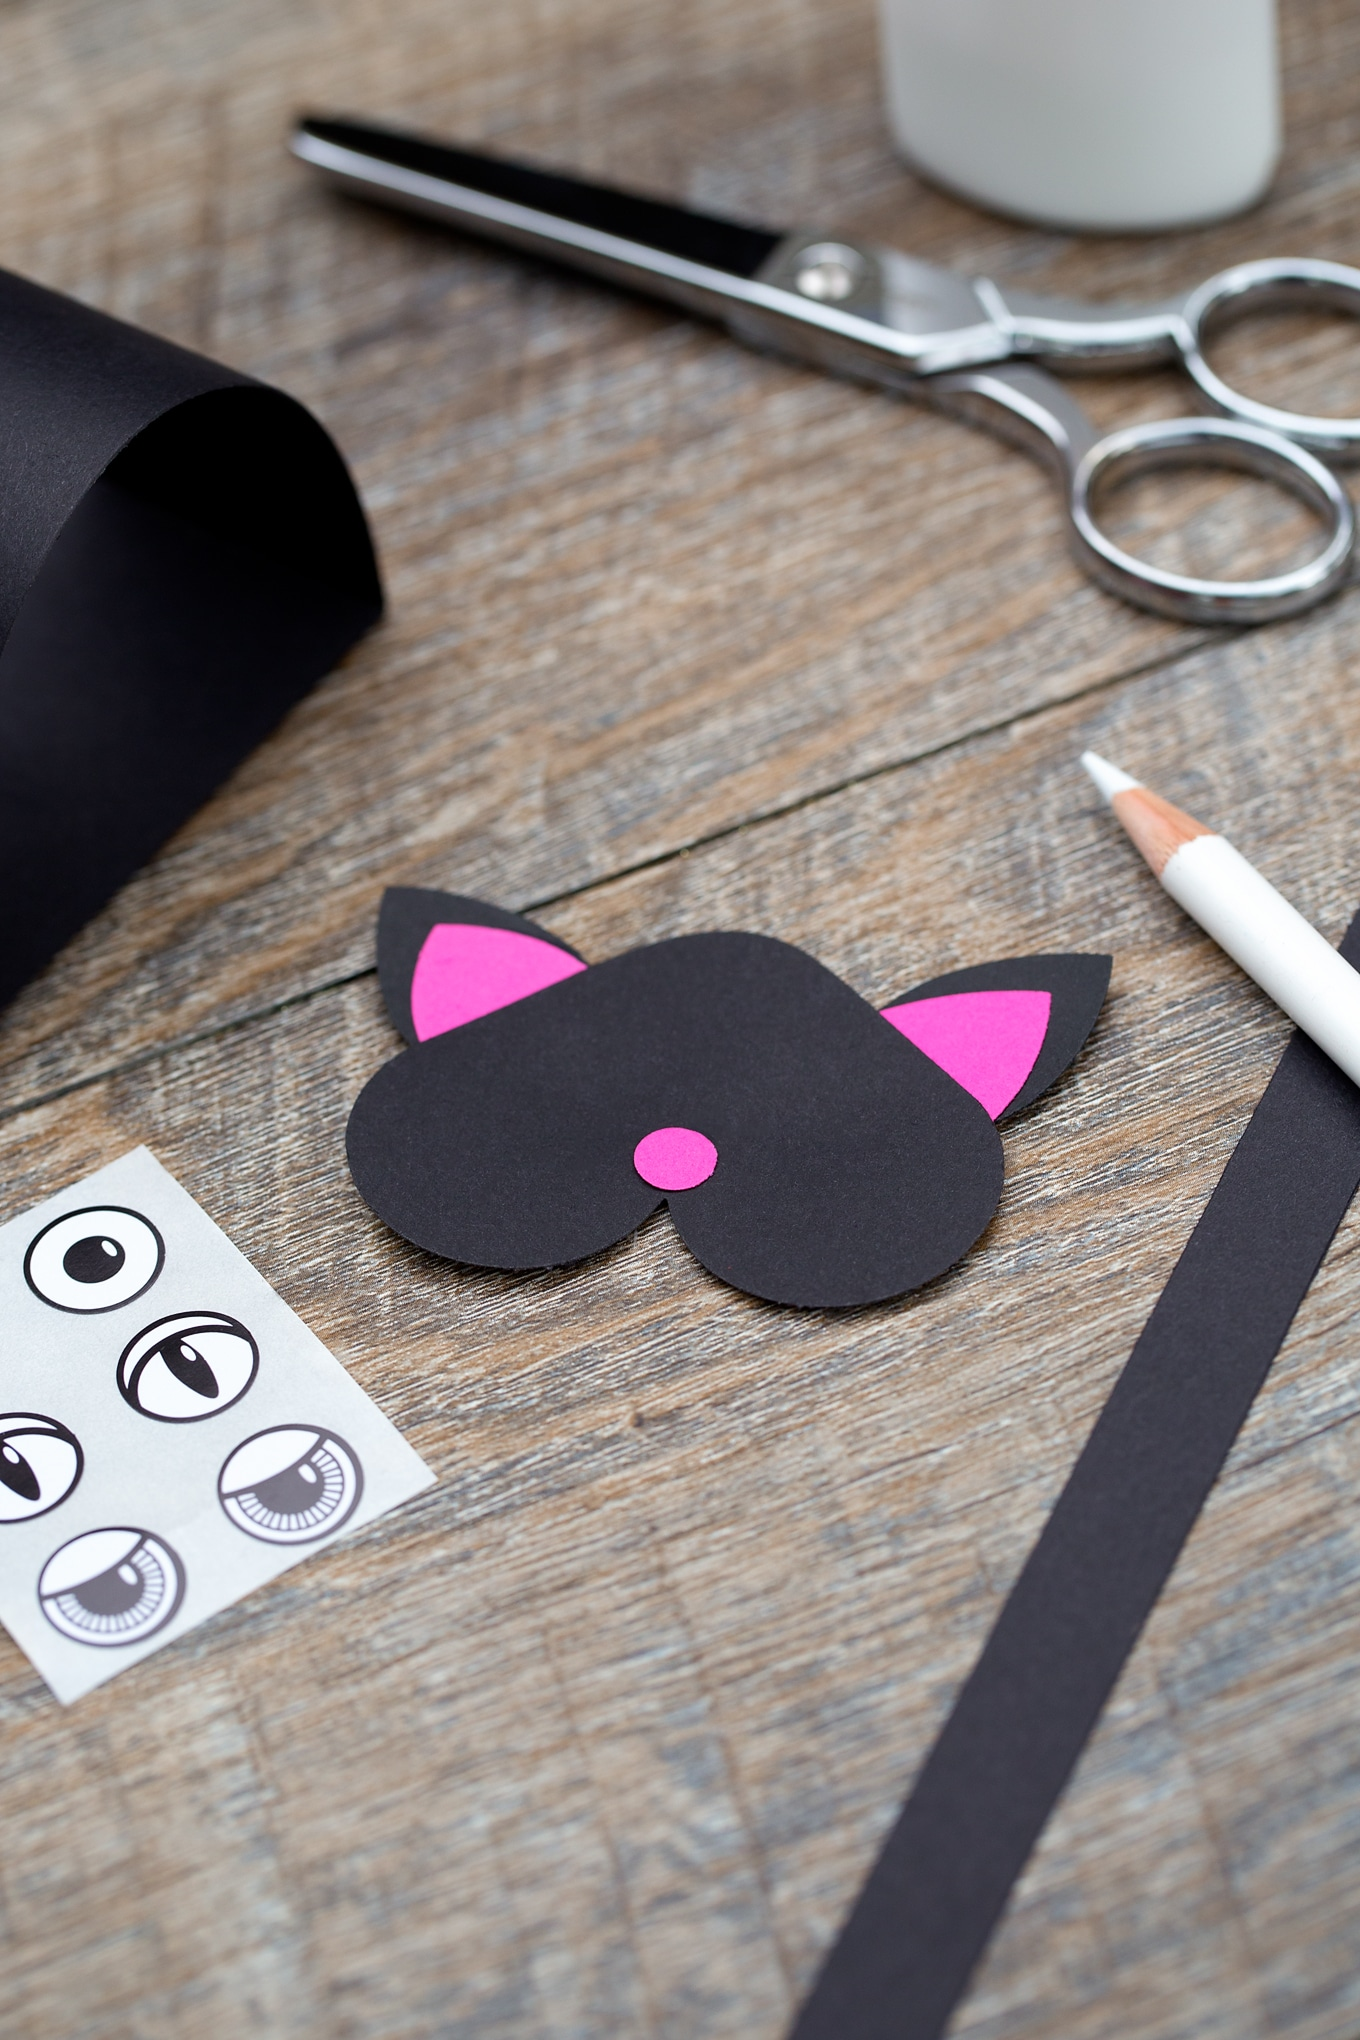 Just in time for Halloween, kids can learn how to make an adorable paper bobble head black cat craft at school or home.